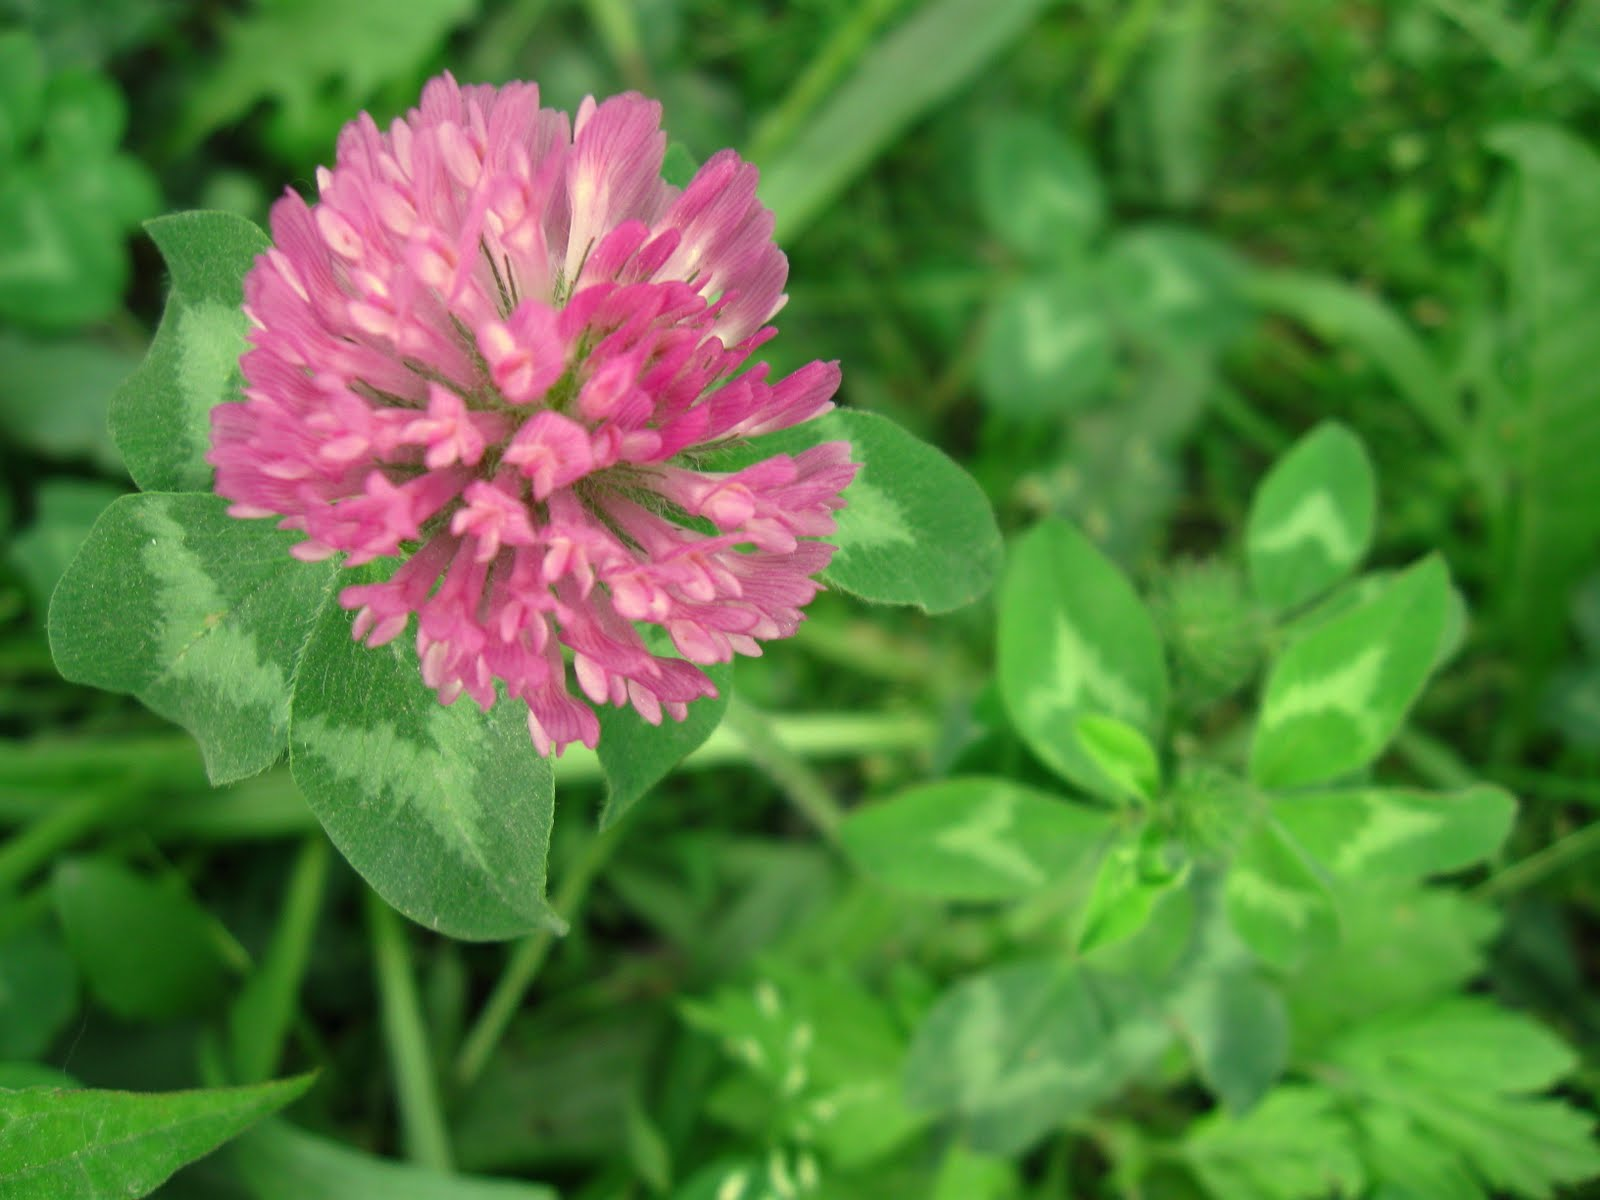 New York City Wildflowers: Red clover